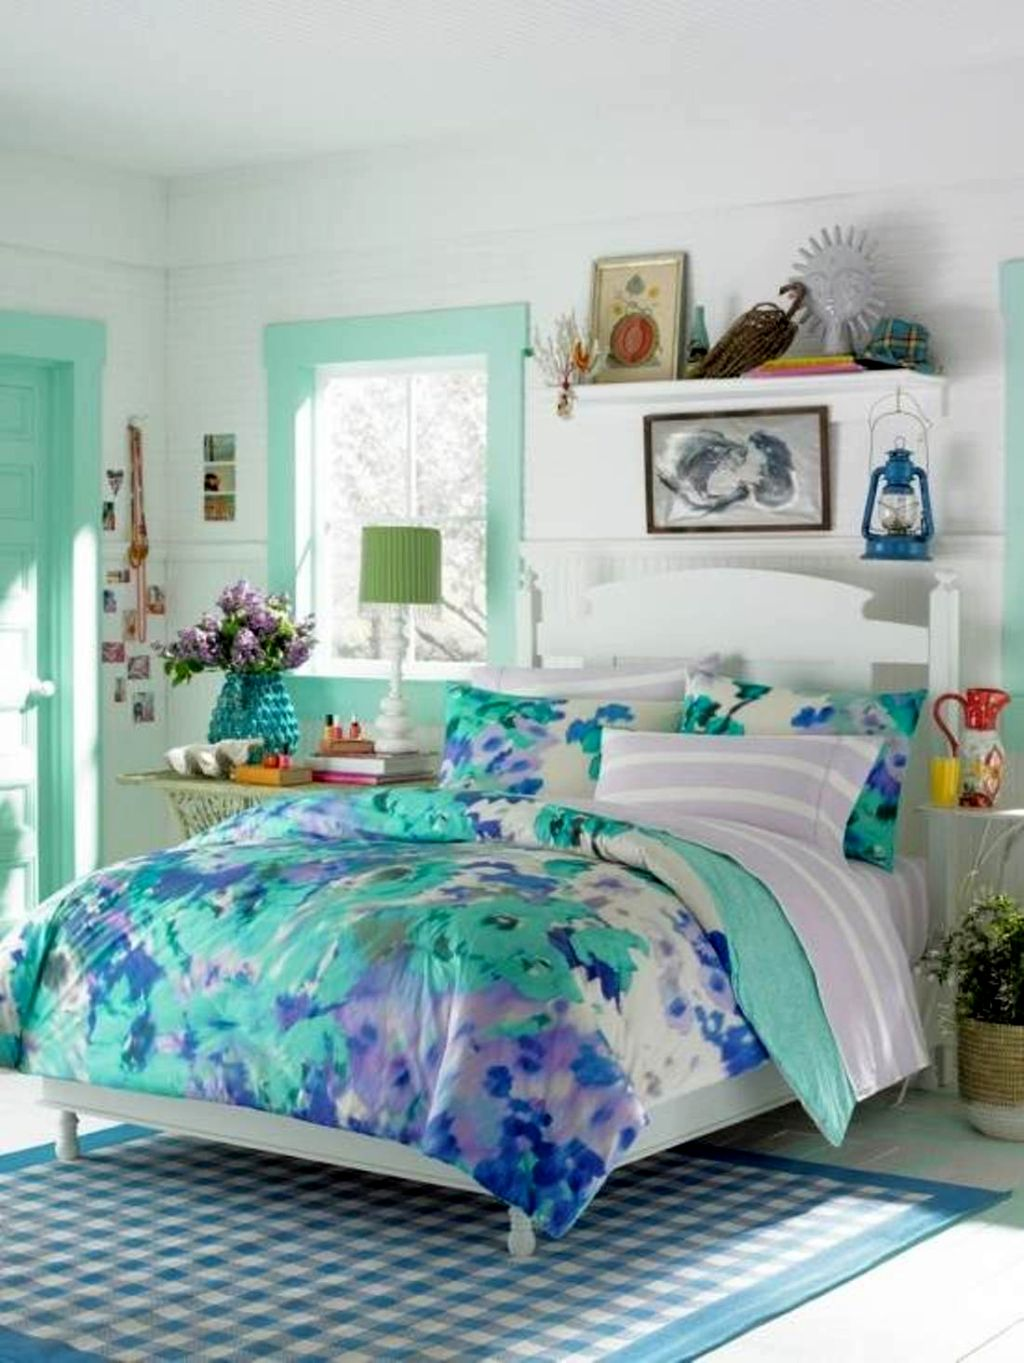 20 pretty girl bedrooms for your little princesses - Bedroom for teenager girl ...